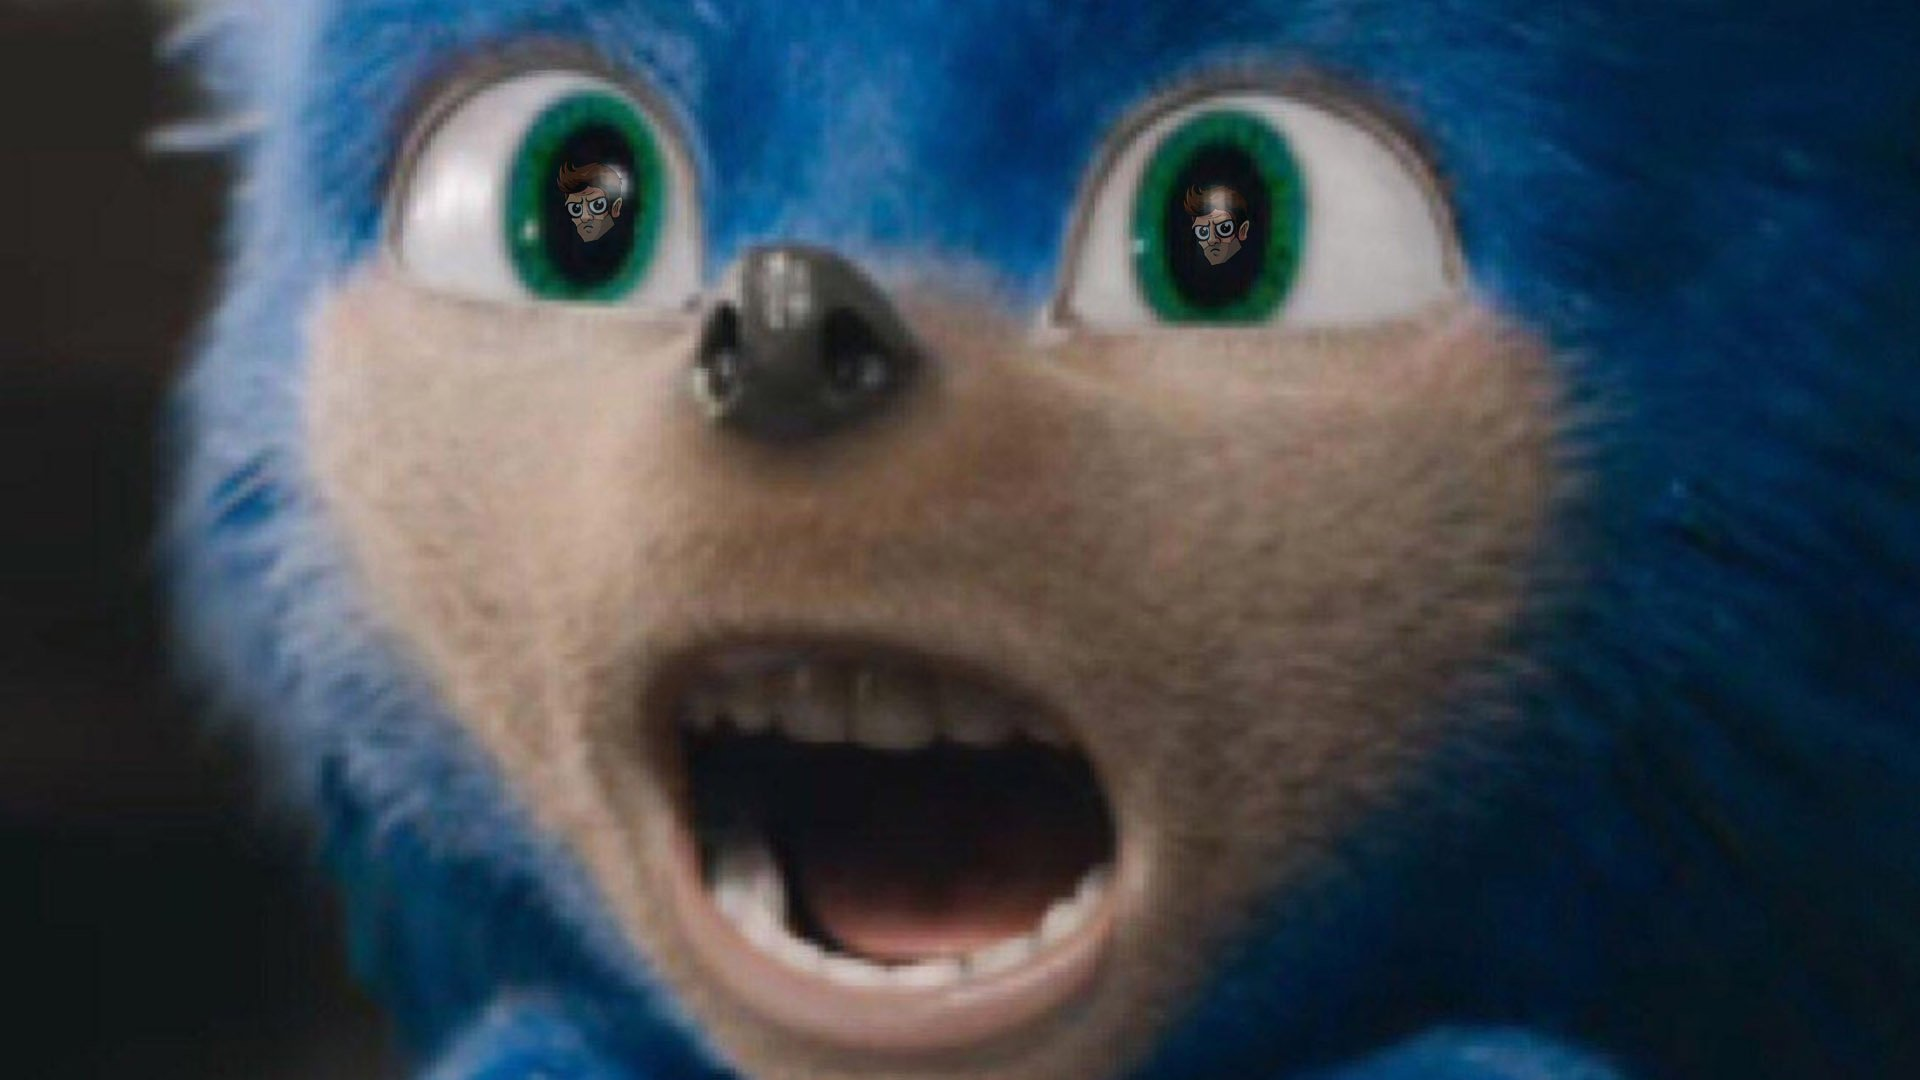 In today's episode of Pregame Discharge, Sonic is still a mistake screenshot